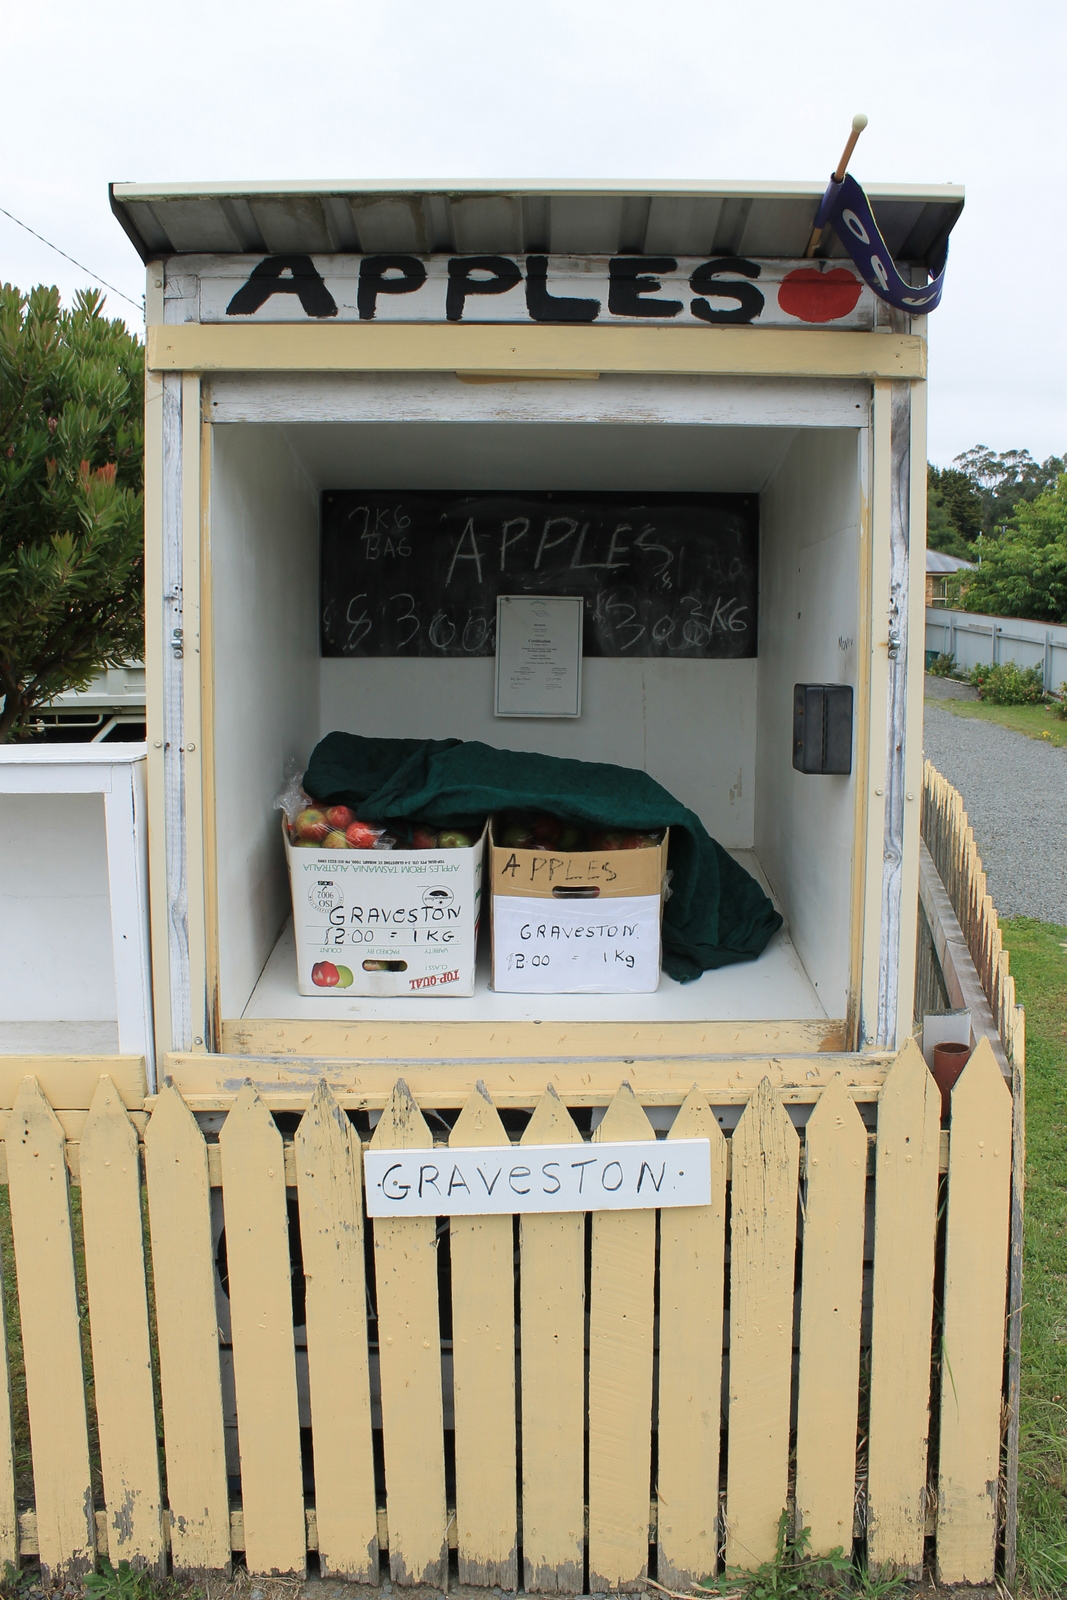 Unmanned roadside stalls around Tasmania's Huon Valley rely on honesty of buyers and offer freshly harvested food for sale